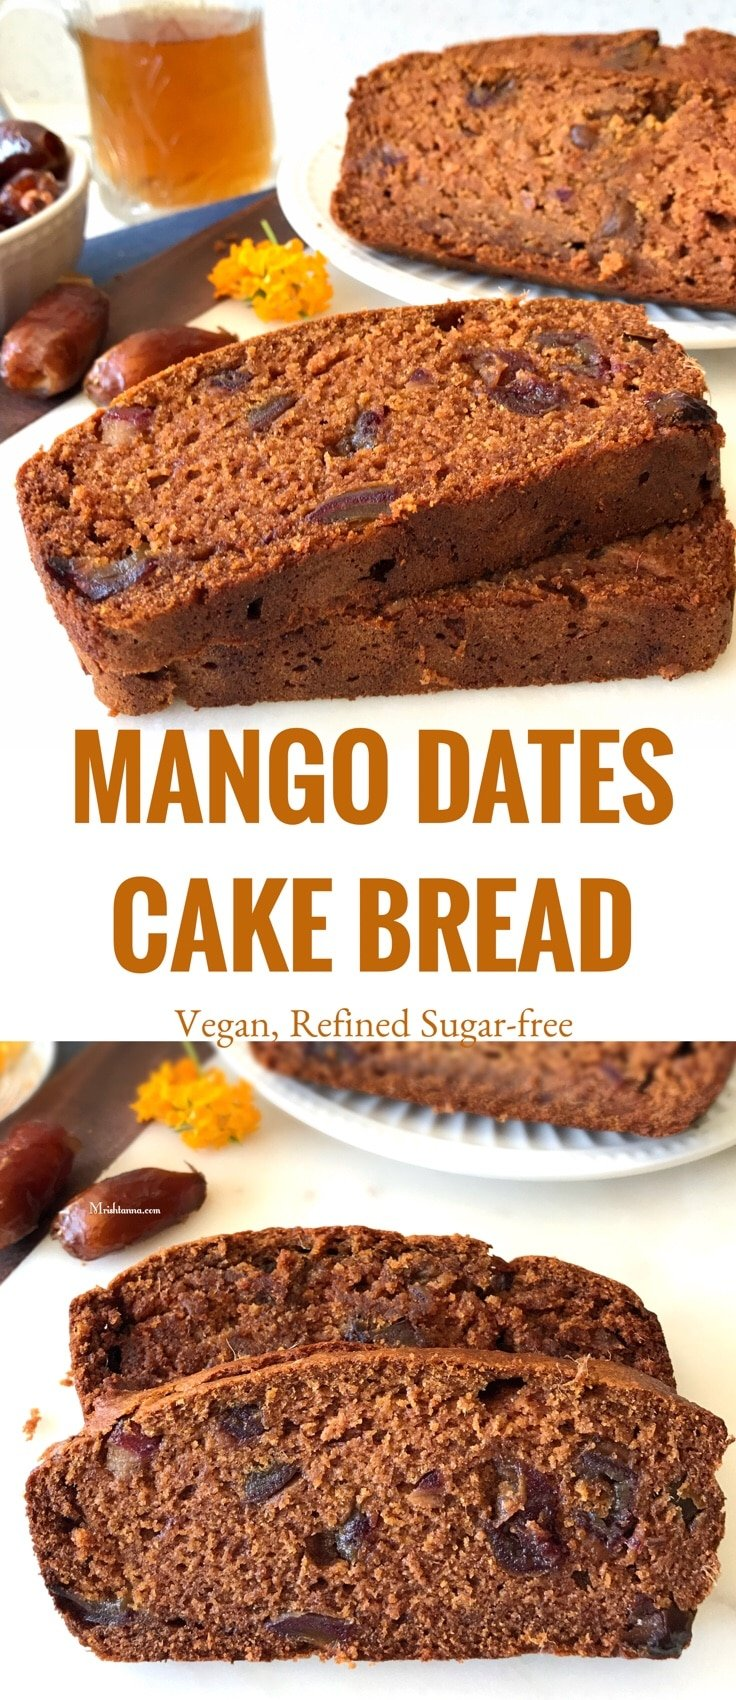 Mango Dates Cake Bread